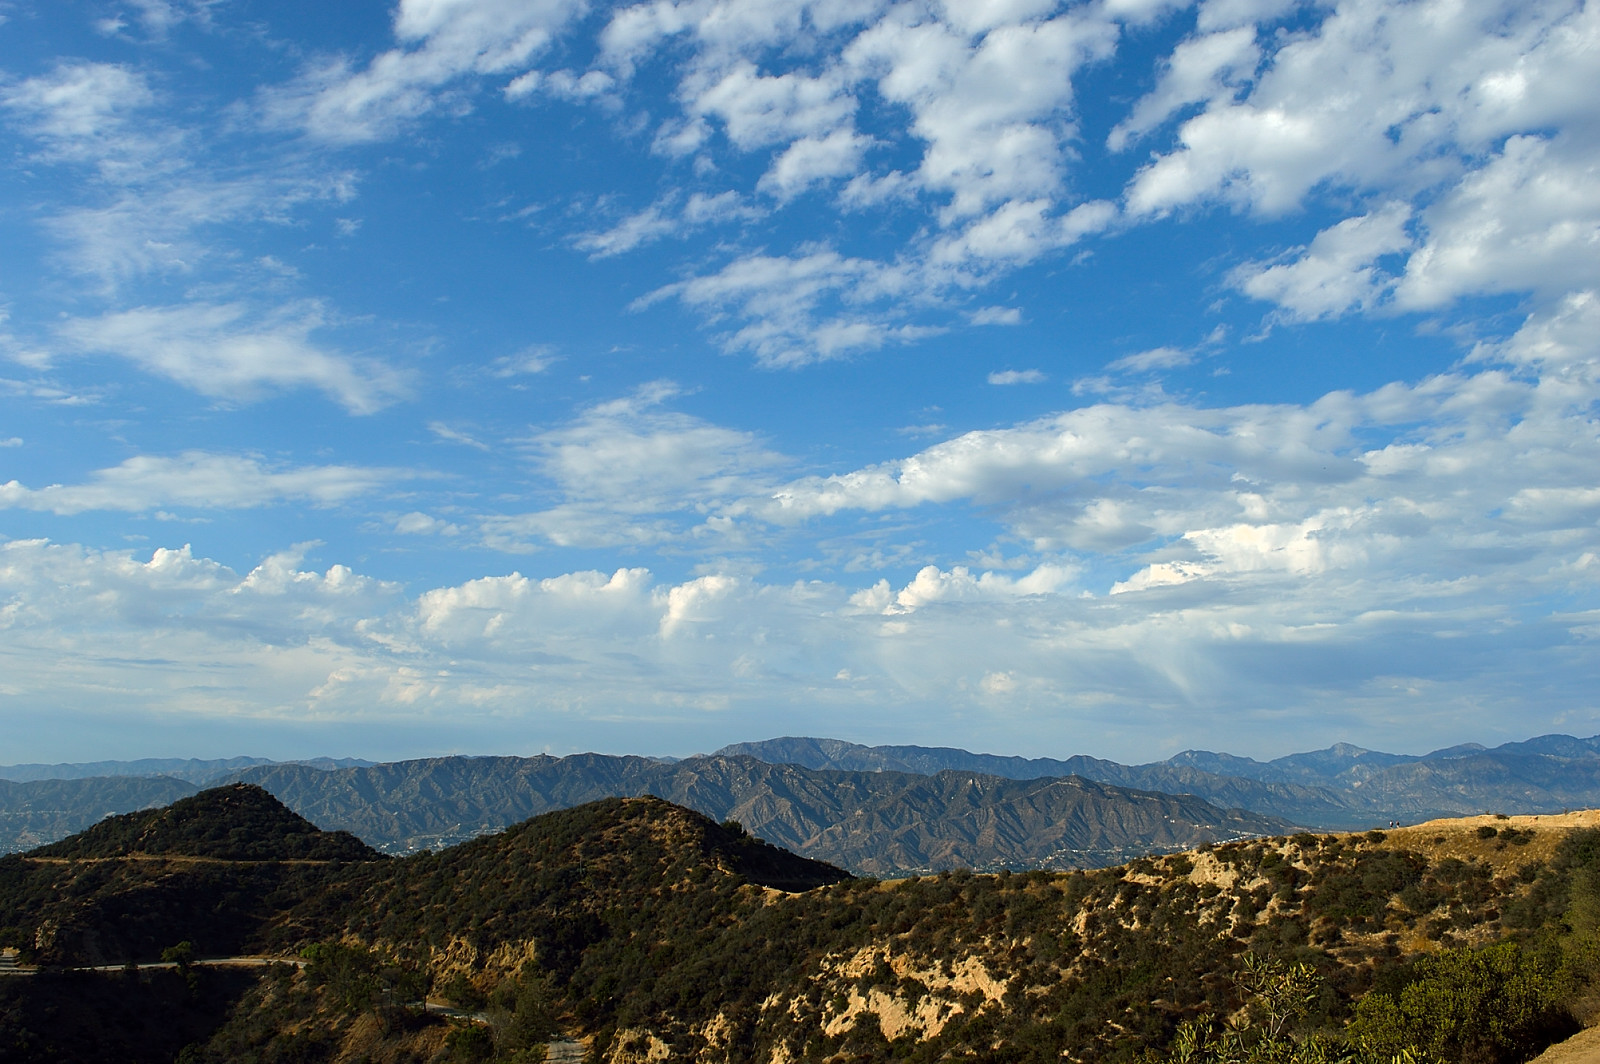 On our way to the Hollywood sign - view at the mountains